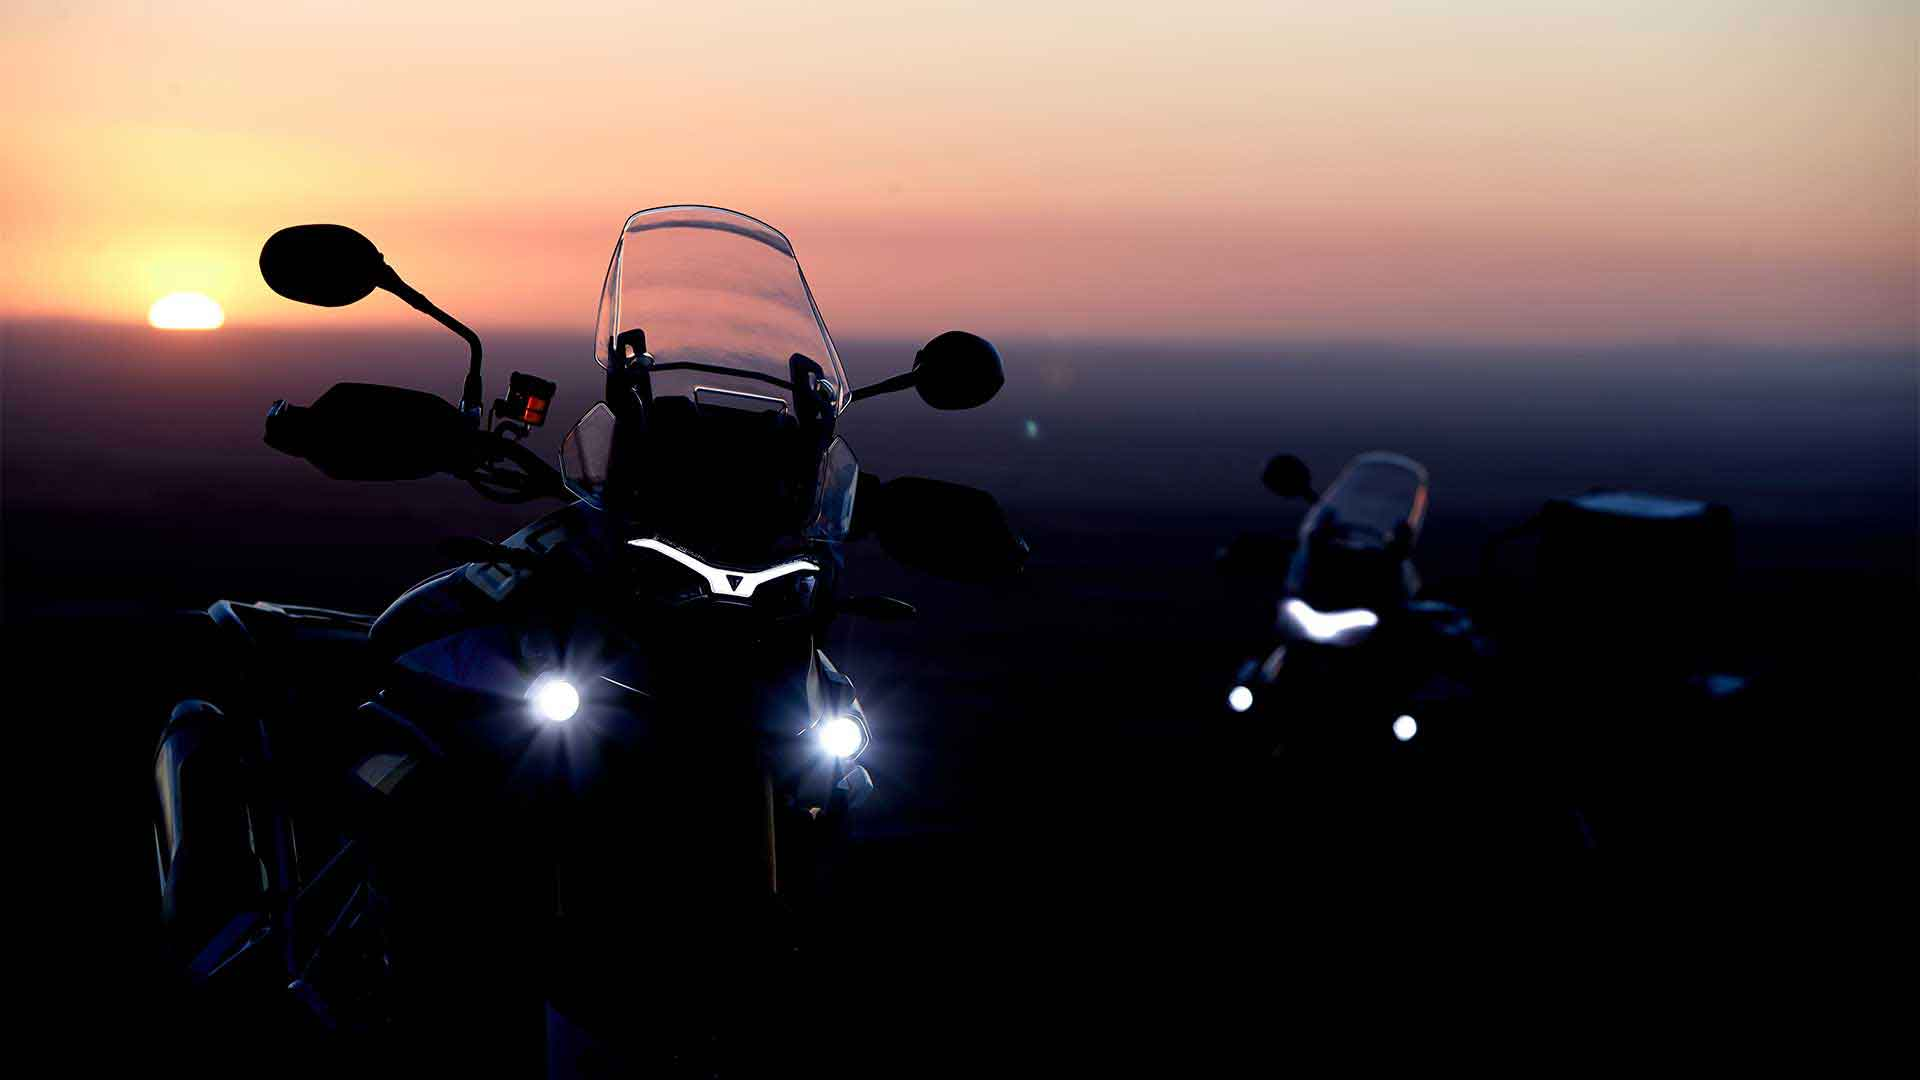 Triumph Tiger 900 silhouettes with headlights lit in sunset